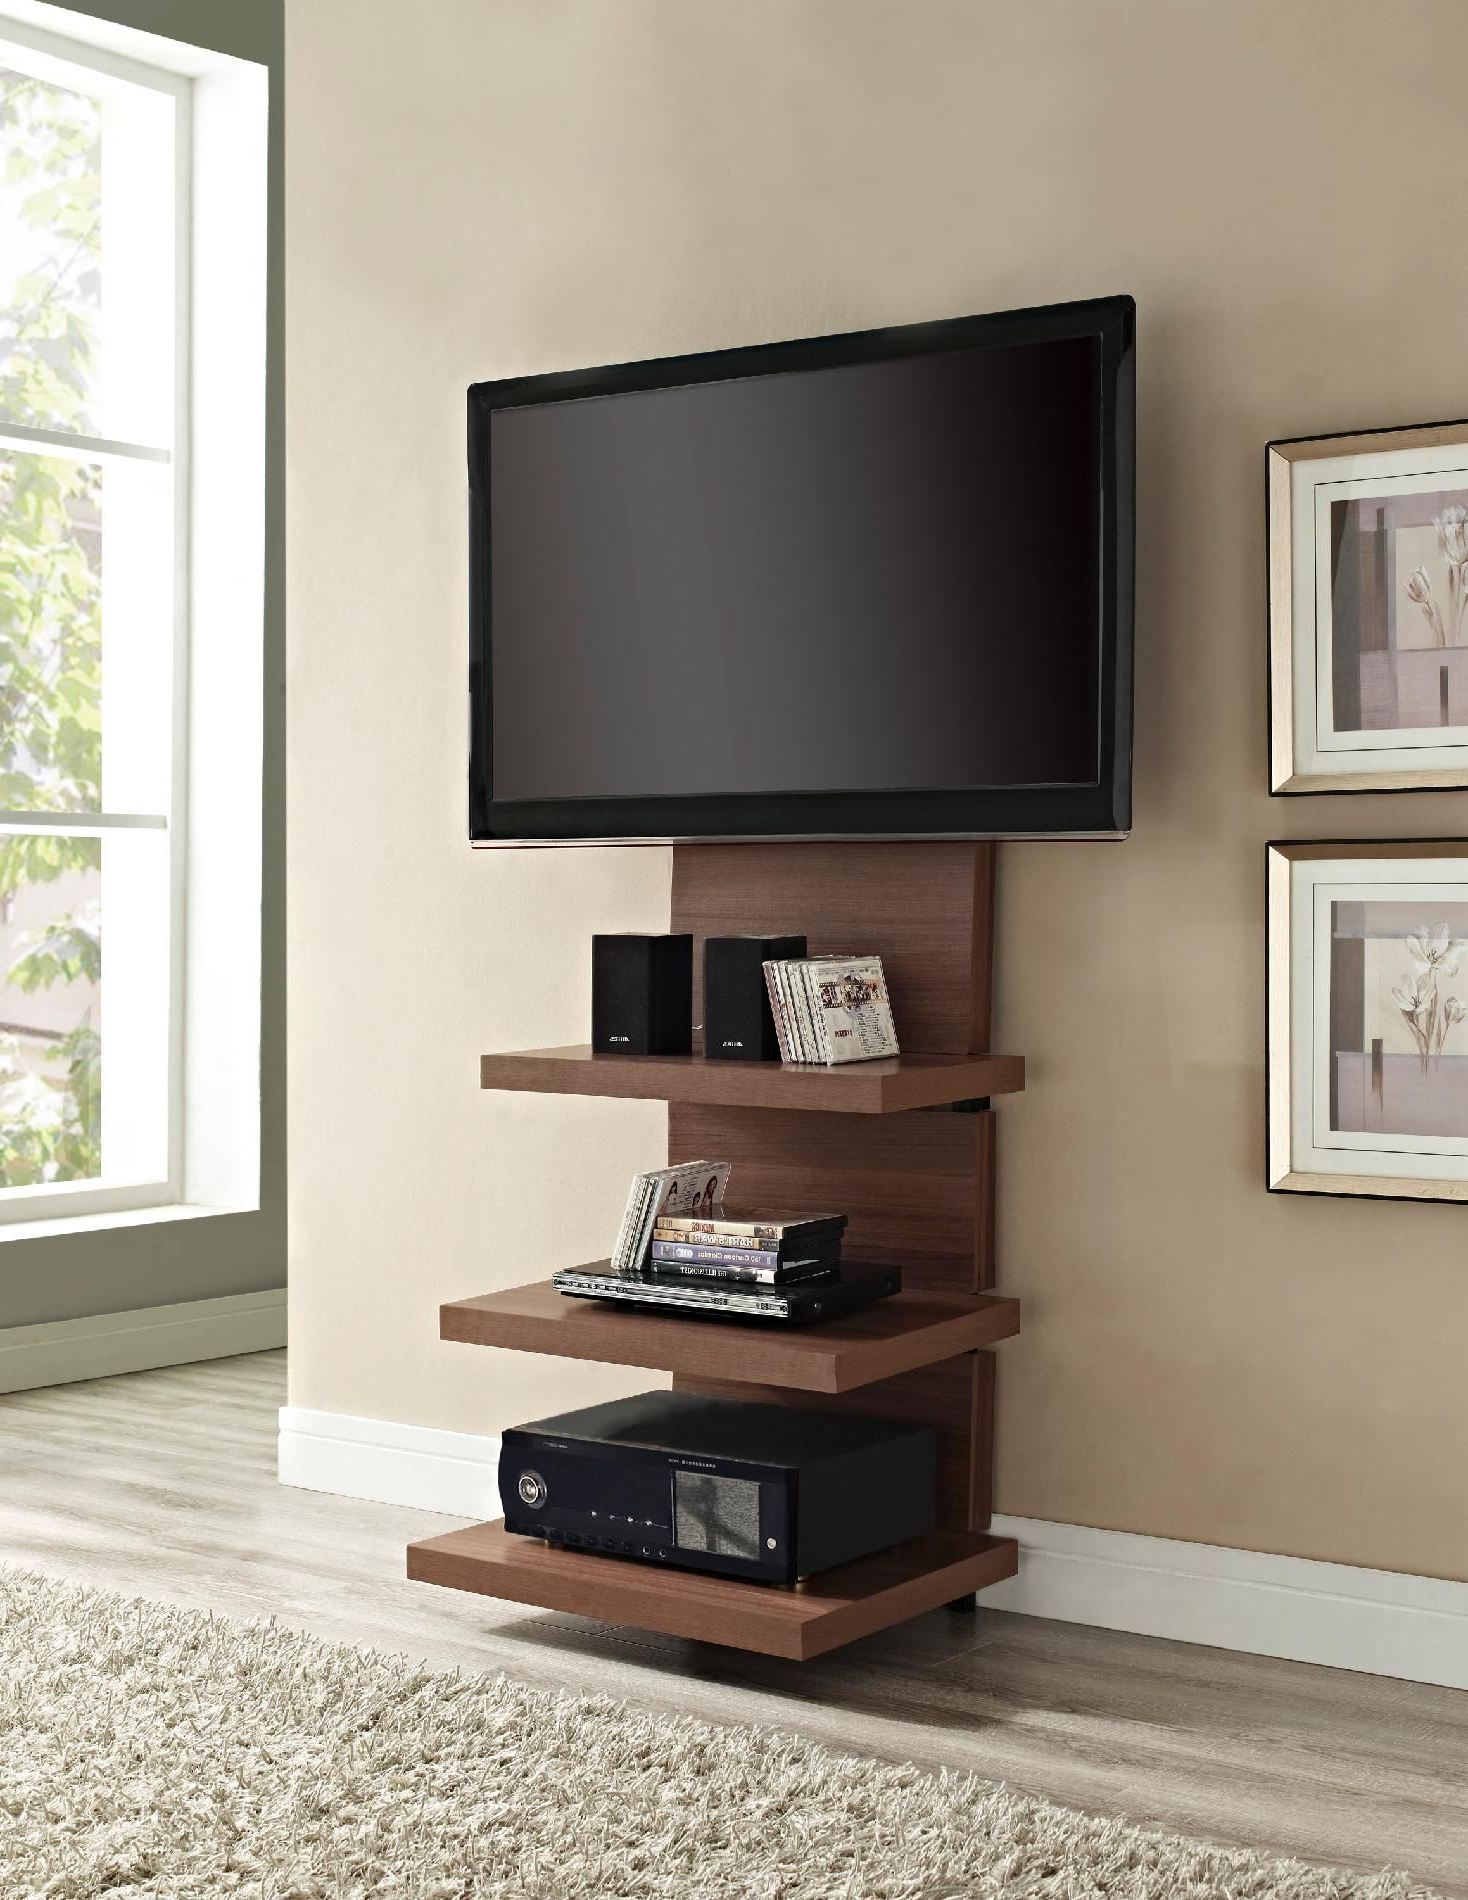 18 Chic And Modern Tv Wall Mount Ideas For Living Room | Dream Home Throughout Century Sky 60 Inch Tv Stands (View 6 of 20)